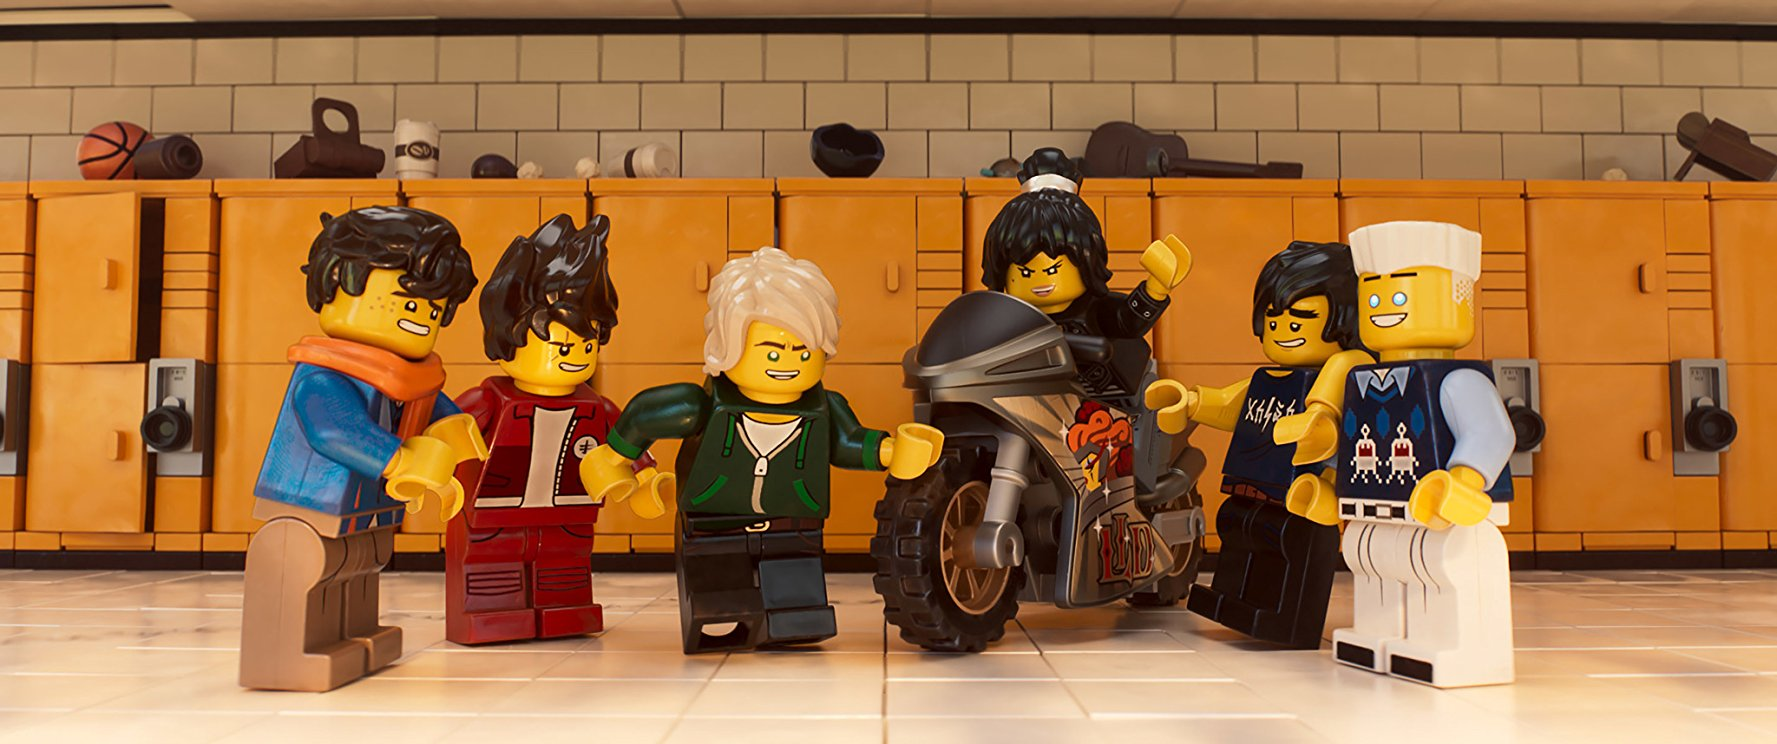 Picking Up the Spare: The LEGO Ninjago Movie, Brad's Status, mother!